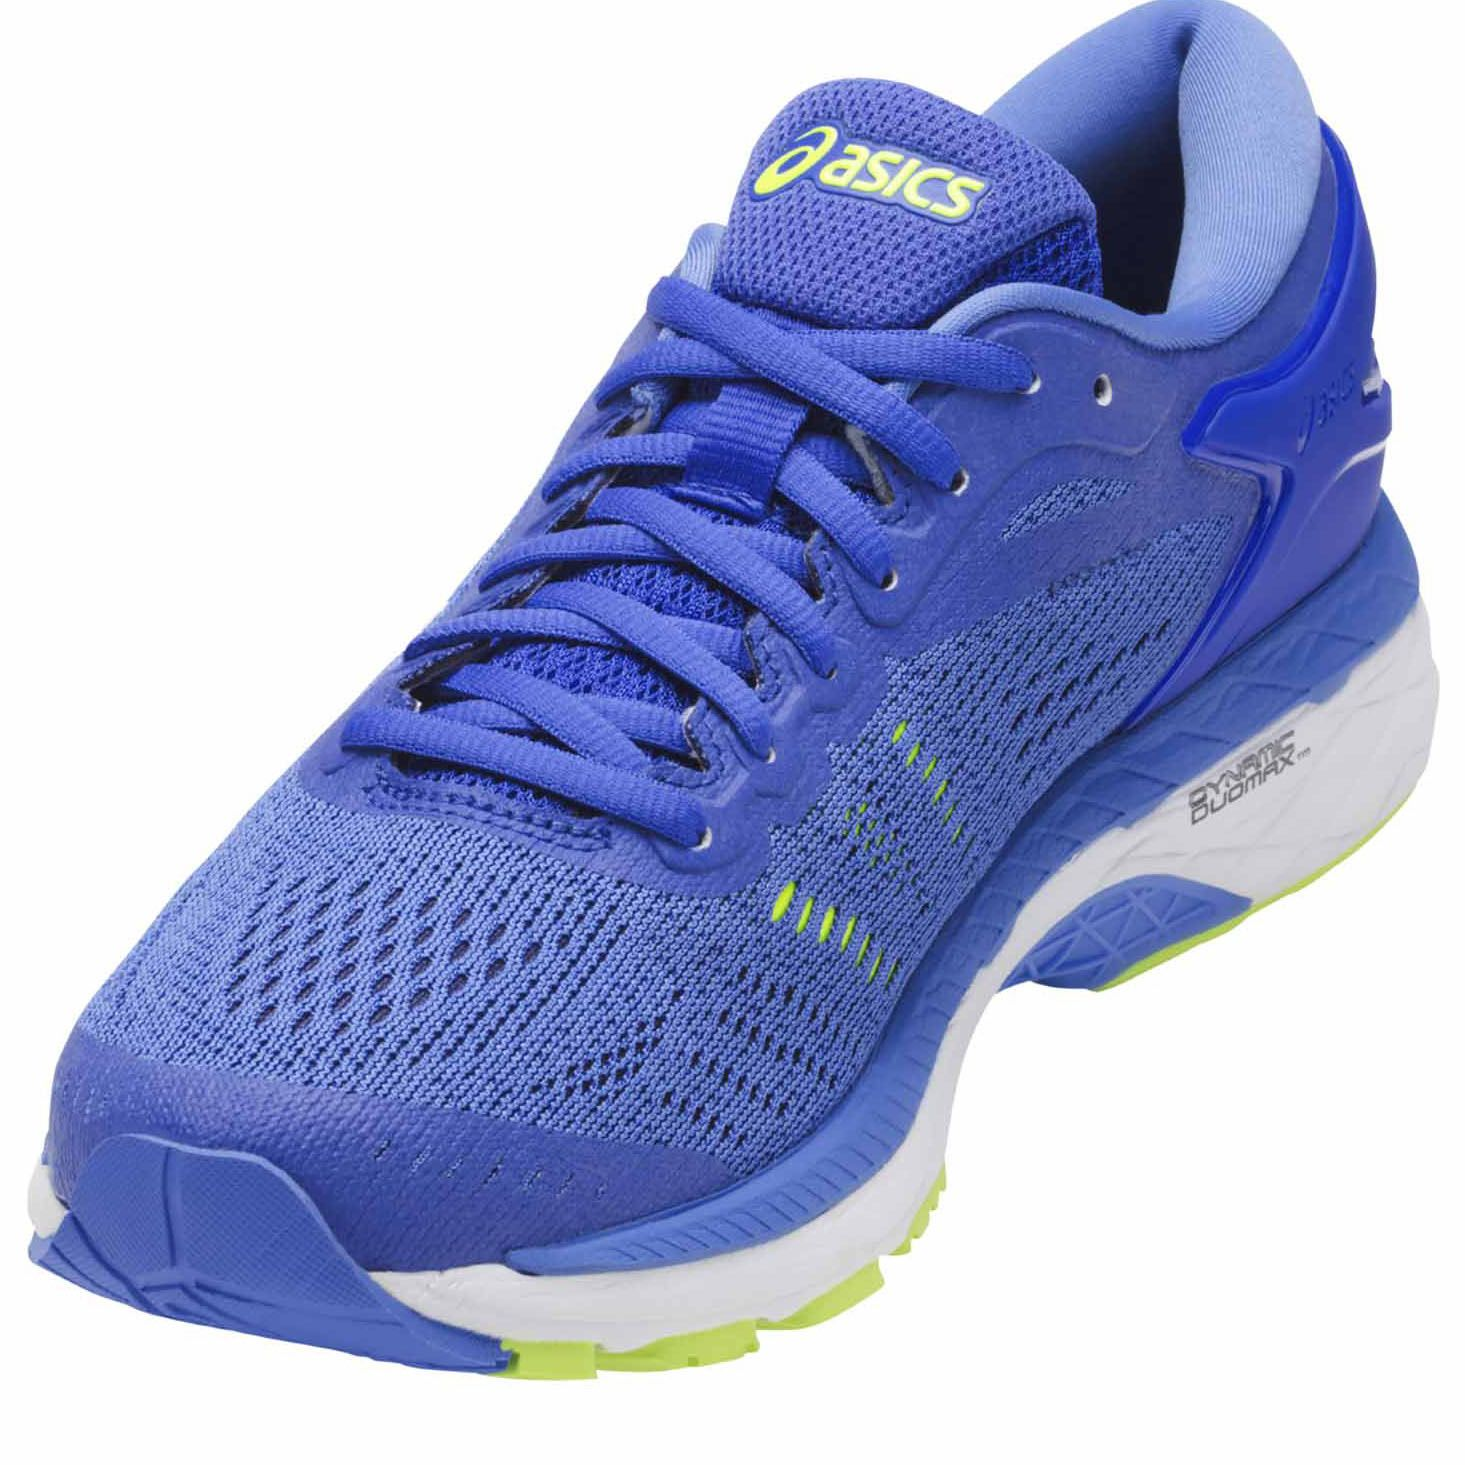 Ladies Stability Running Shoes